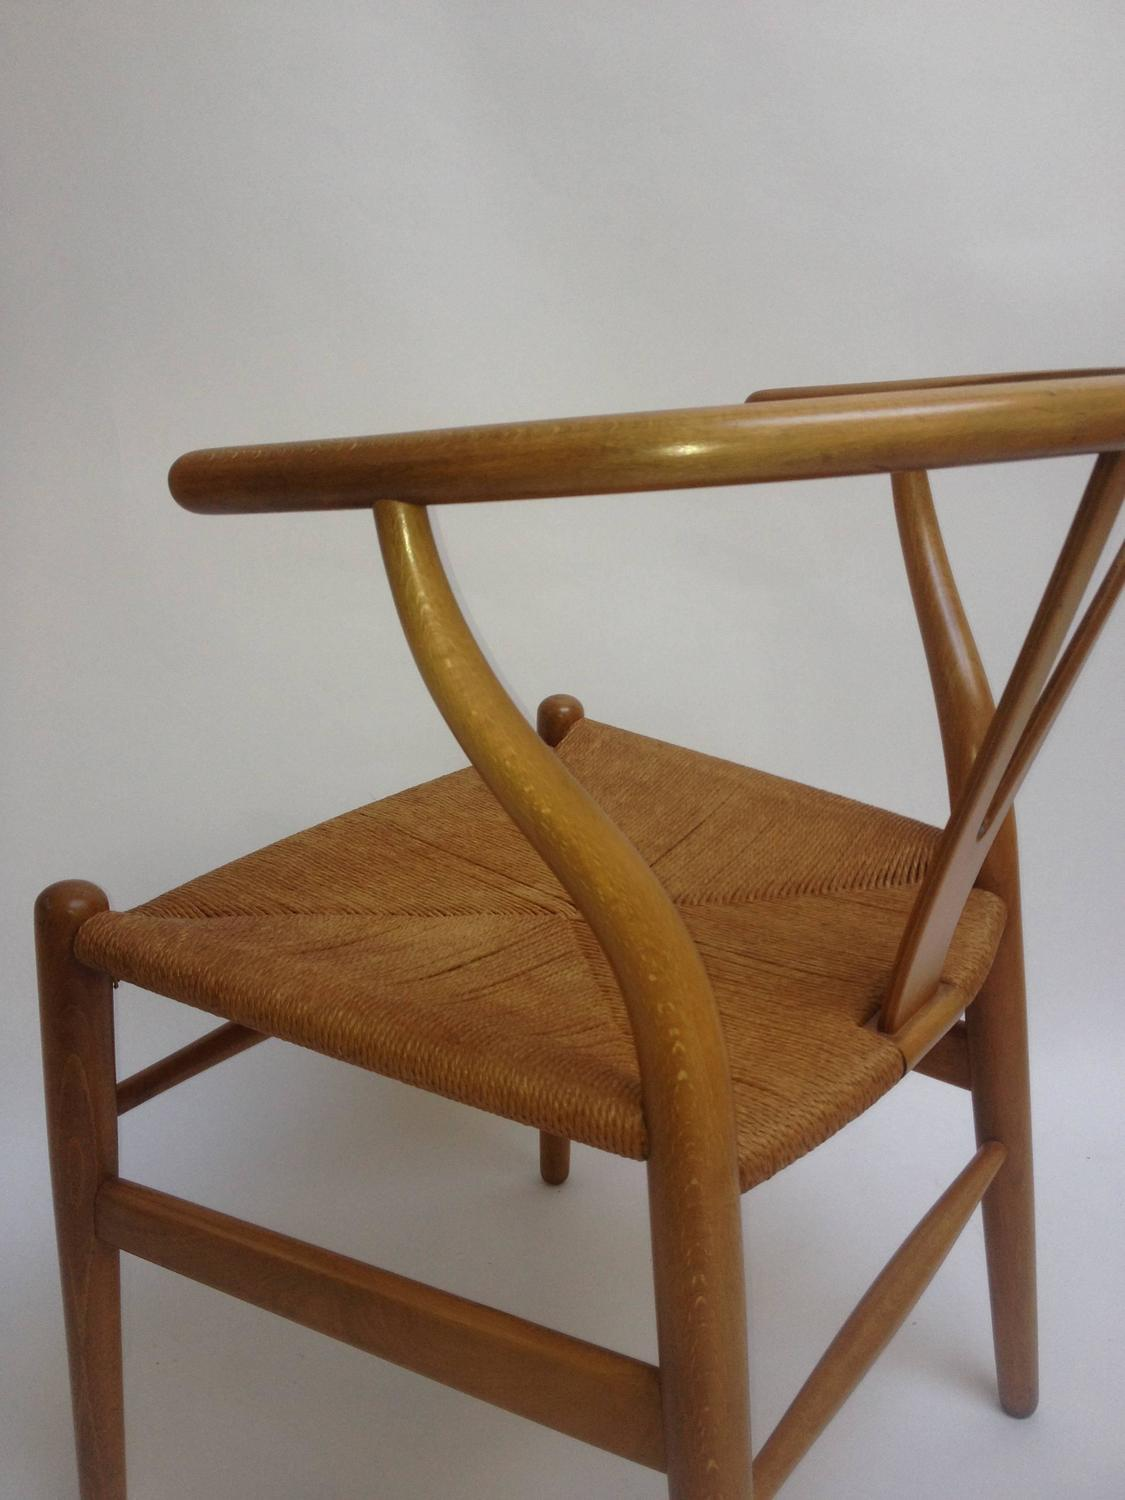 Mid century modern wishbone chair designed by hans wegner for carl hansen and son for sale at - Wishbone chair canada ...